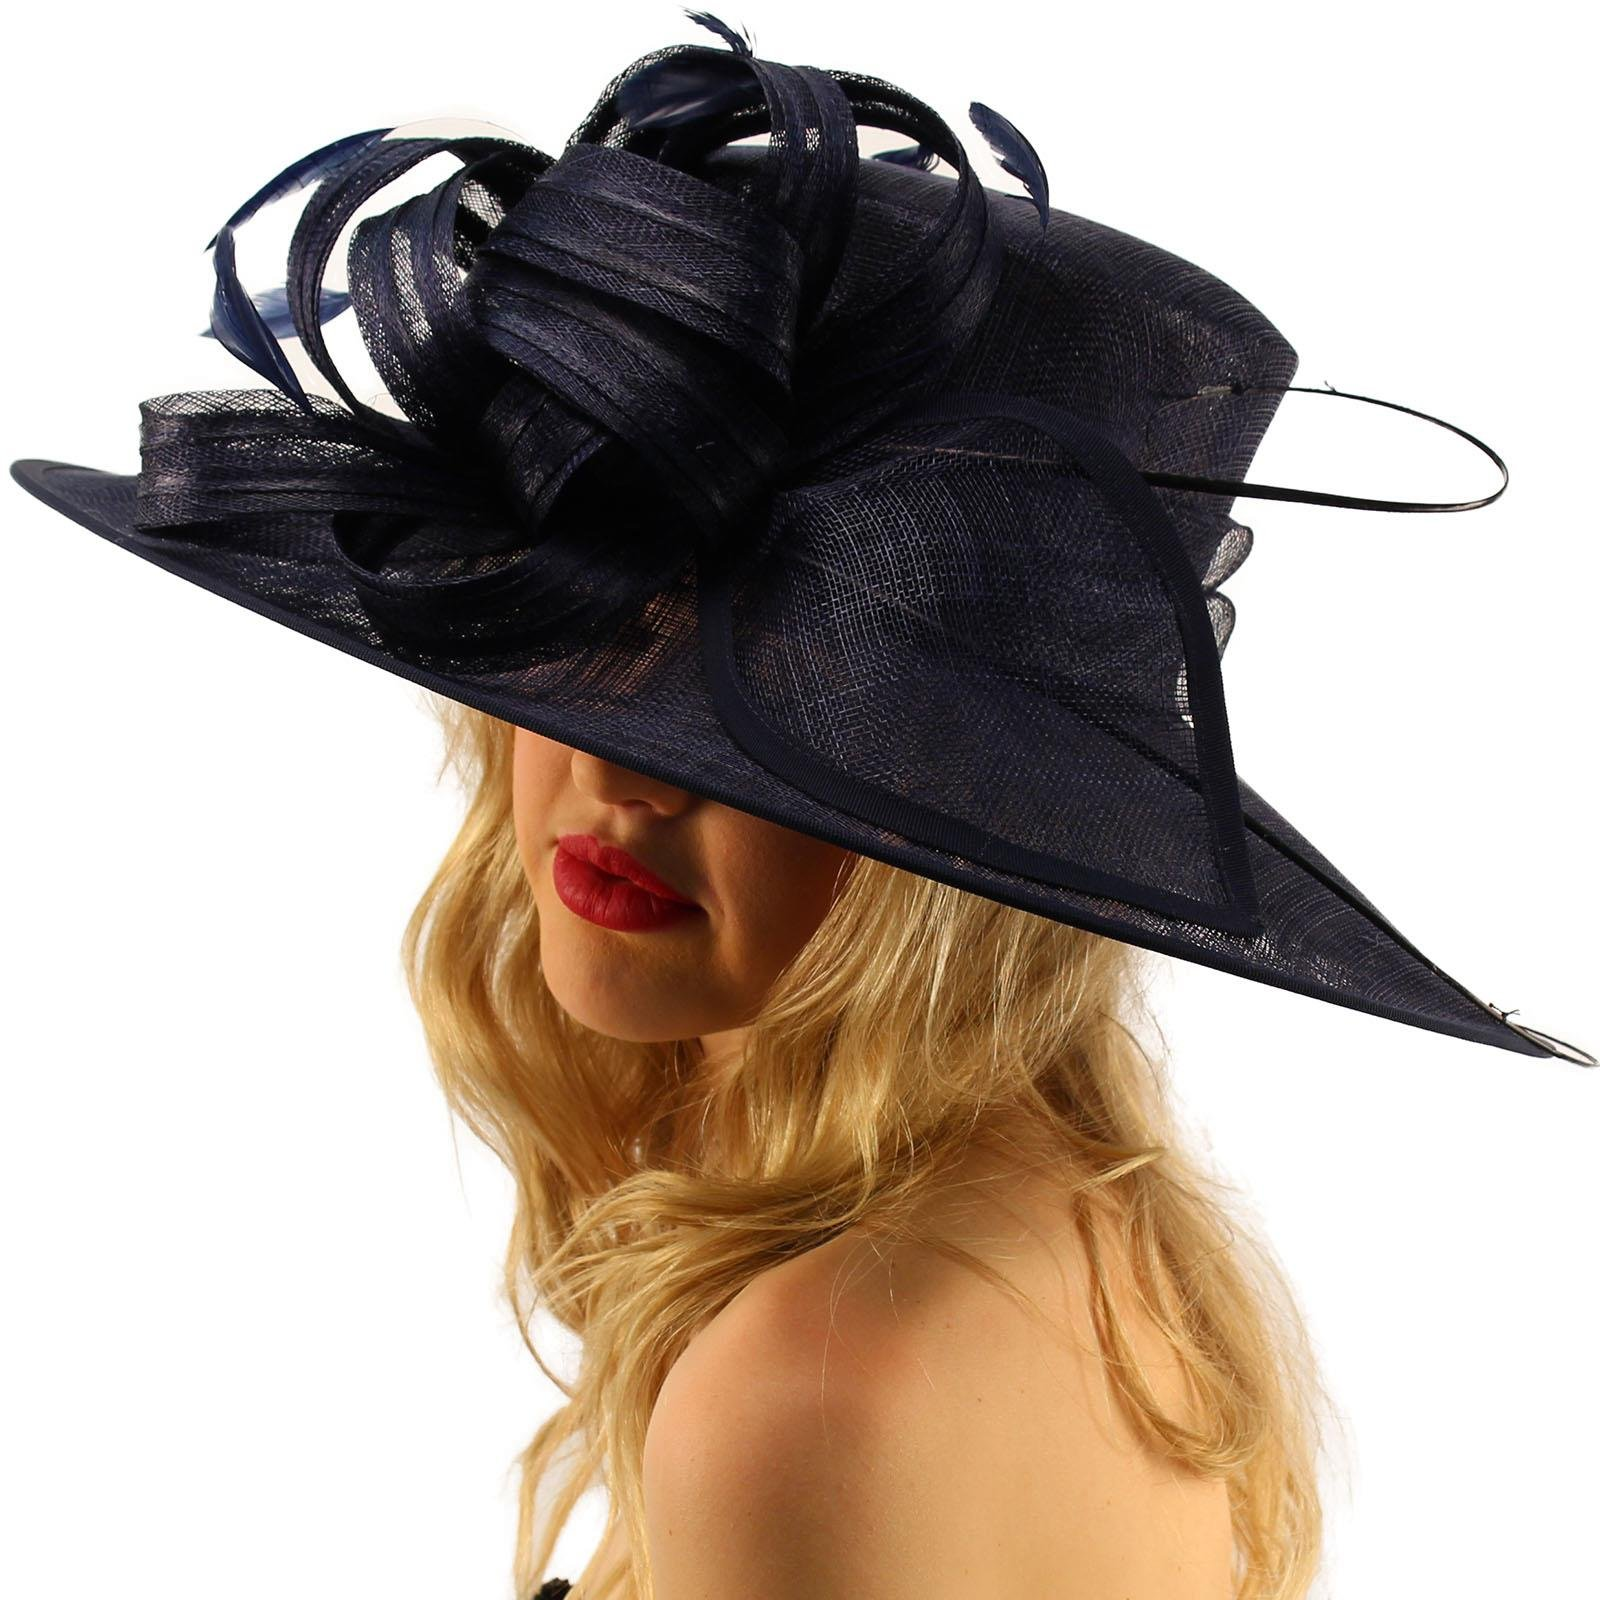 British Regal Sinamy Ribbon Feathers Quill Derby Floppy Bucket Dressy Hat Navy by SK Hat shop (Image #1)